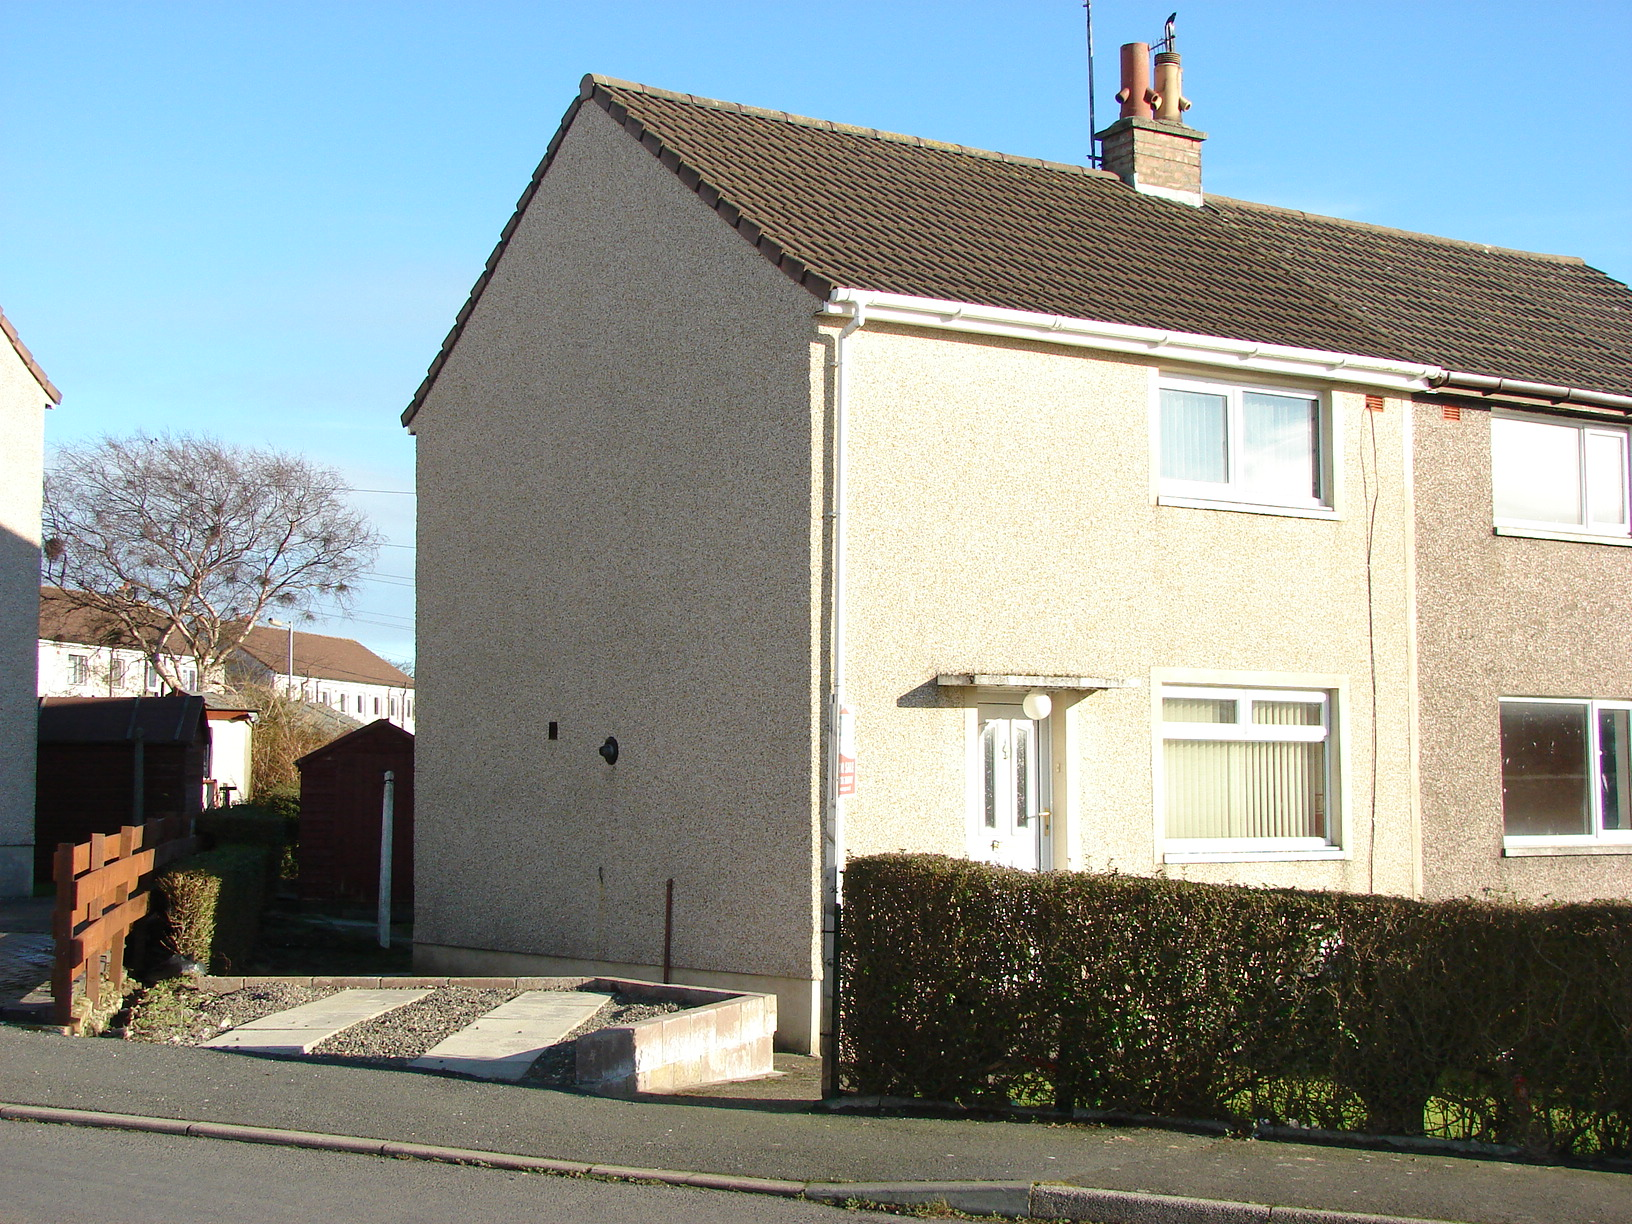 Photograph of 7 Dunbae Road, Stranraer